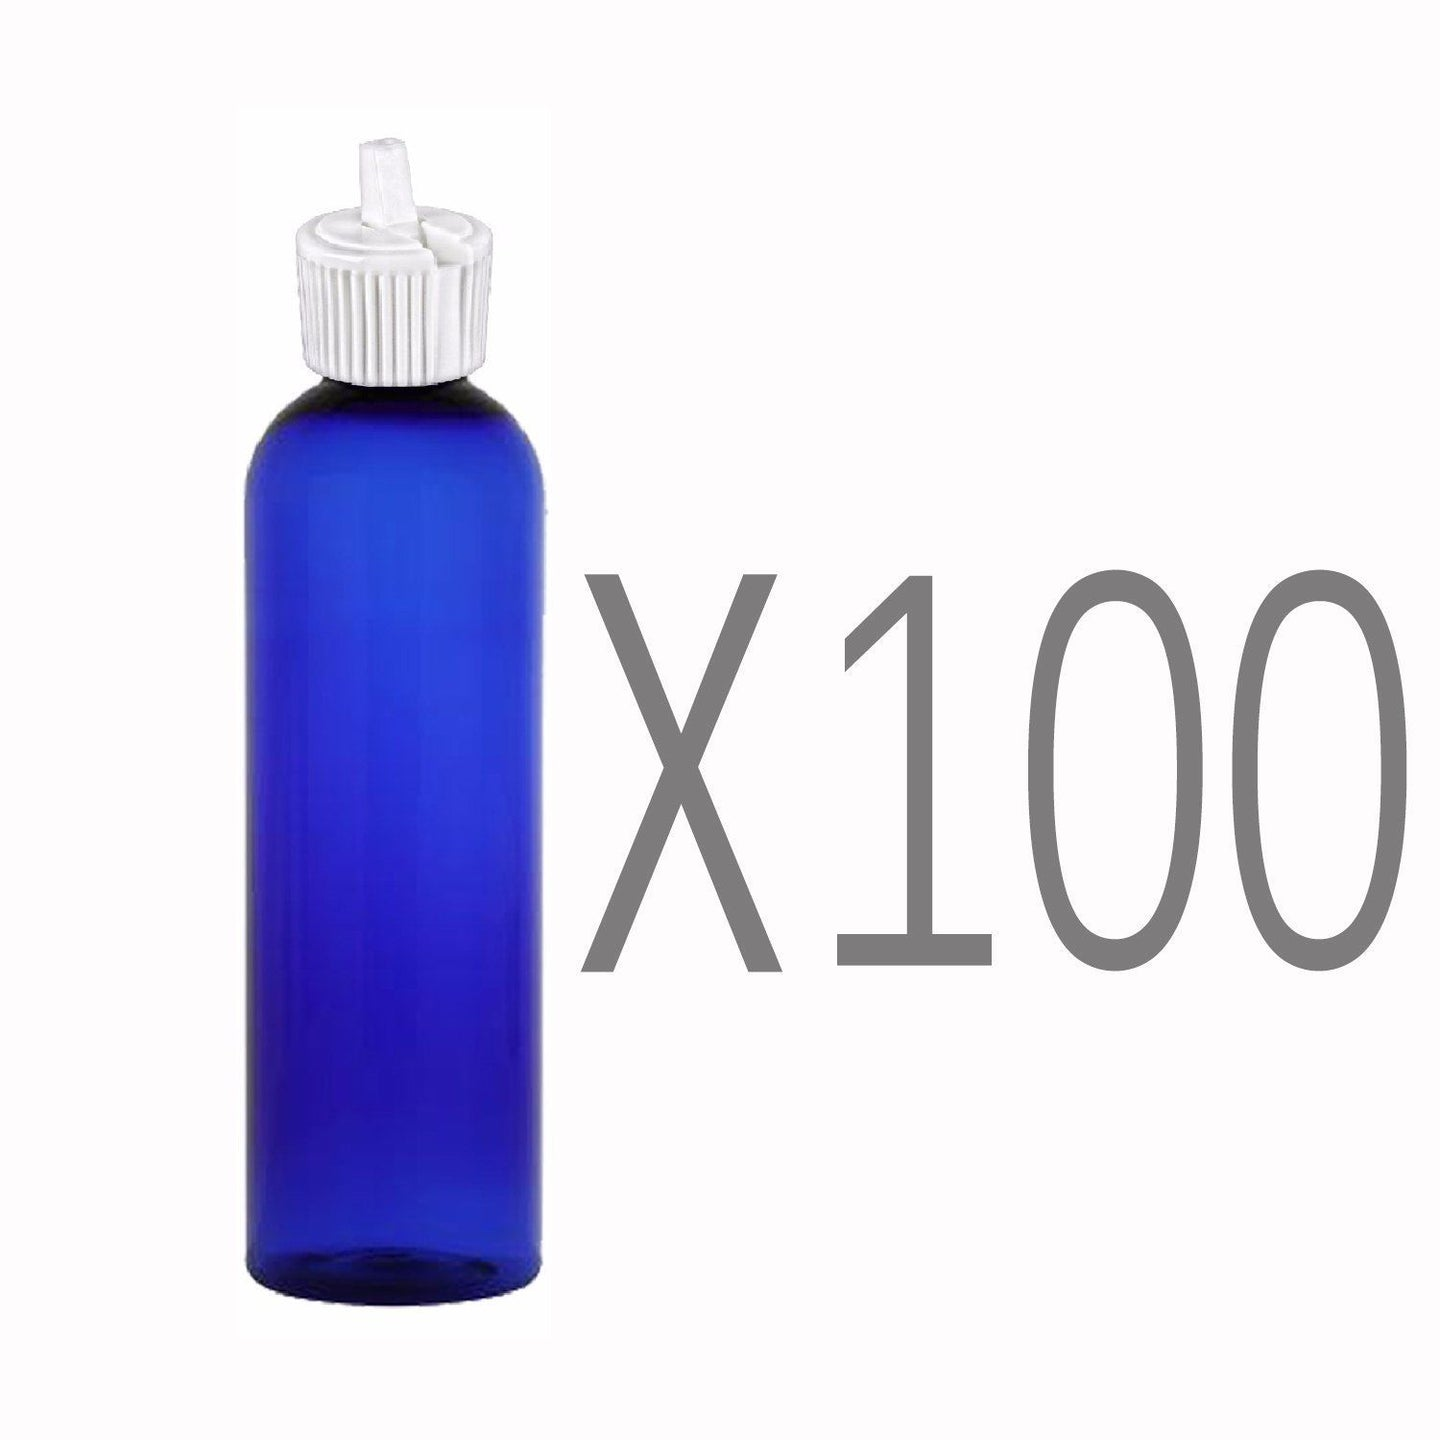 MoYo Natural Labs 4 oz Squirt Bottles, Squeezable Empty Travel Containers, BPA Free PET Plastic for Essential Oils and Liquids, Toiletry/Cosmetic Bottles (Neck 20-410) (Pack of 100, Blue)